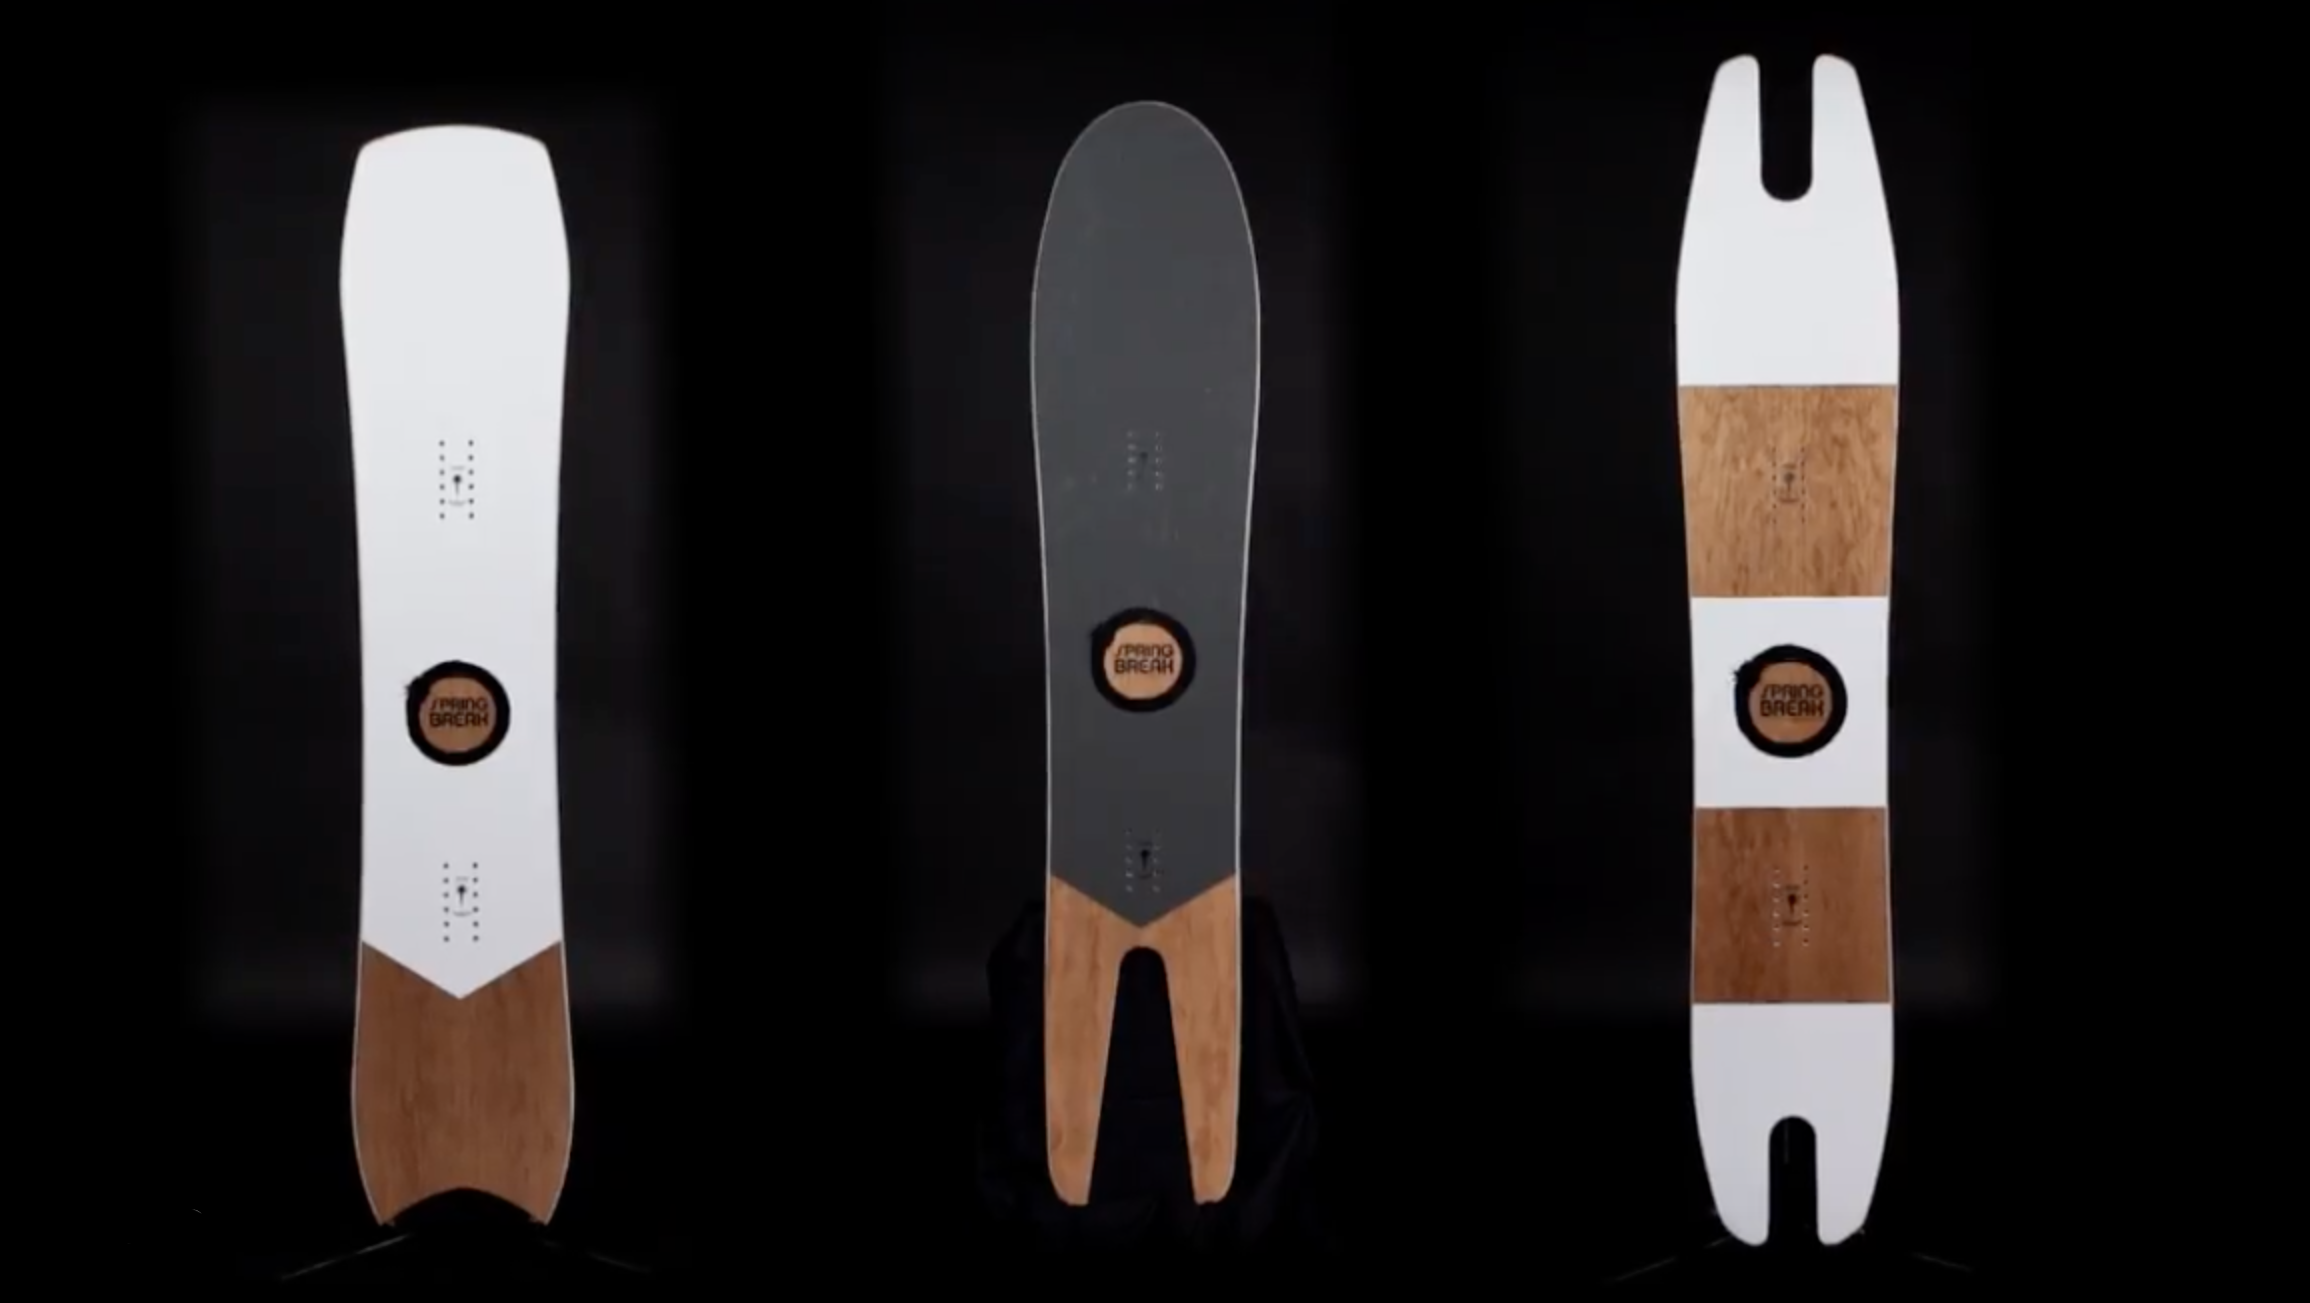 Shred the Snow: CAPiTA Improves Snowboards with 3D Printed Sidewall Technology | All3DP